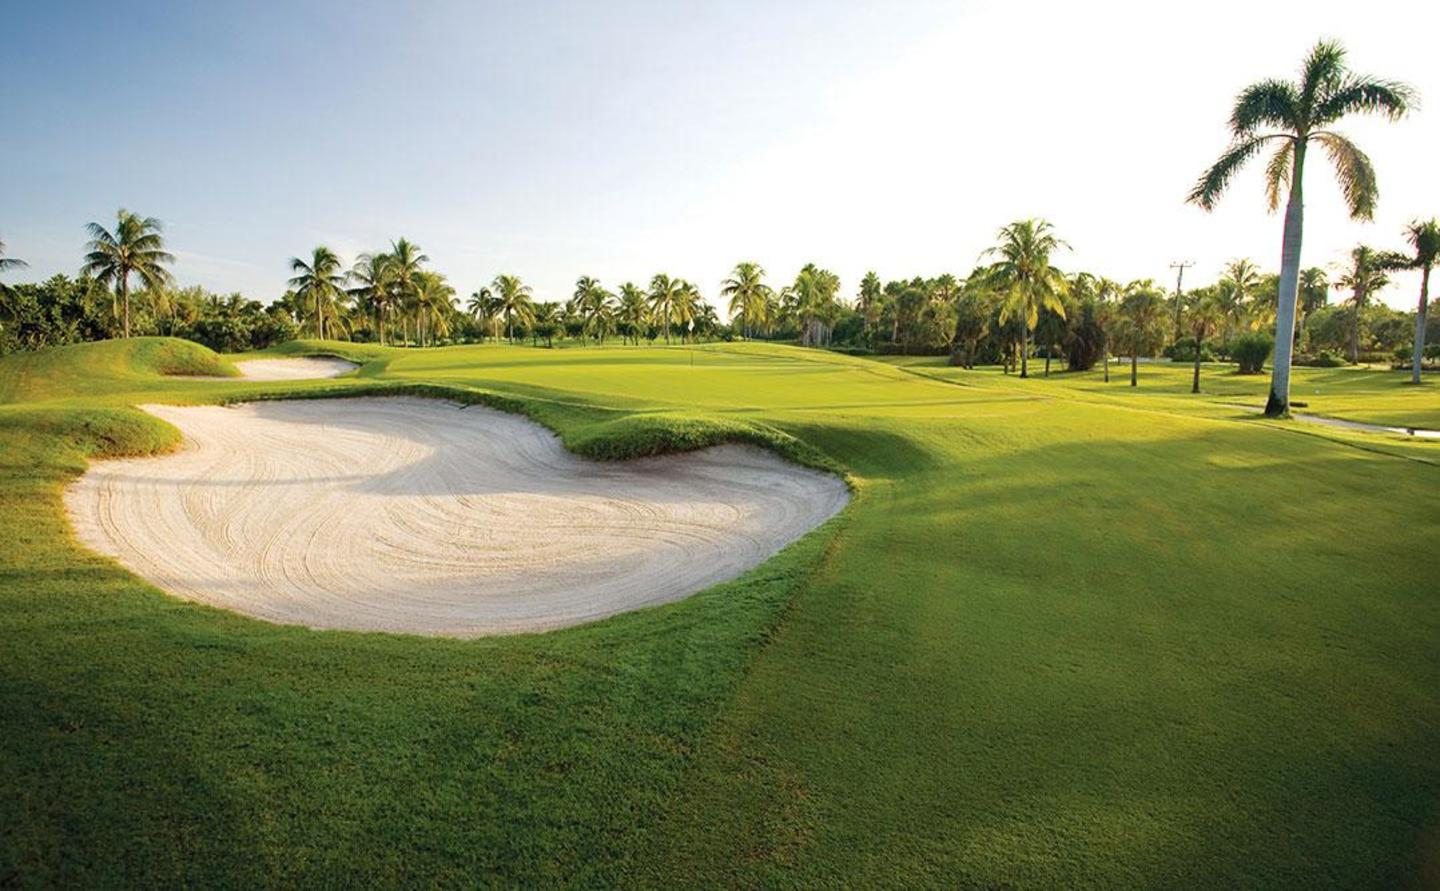 Surrounded by Miami's natural beauty at Crandon Golf at Key Biscayne